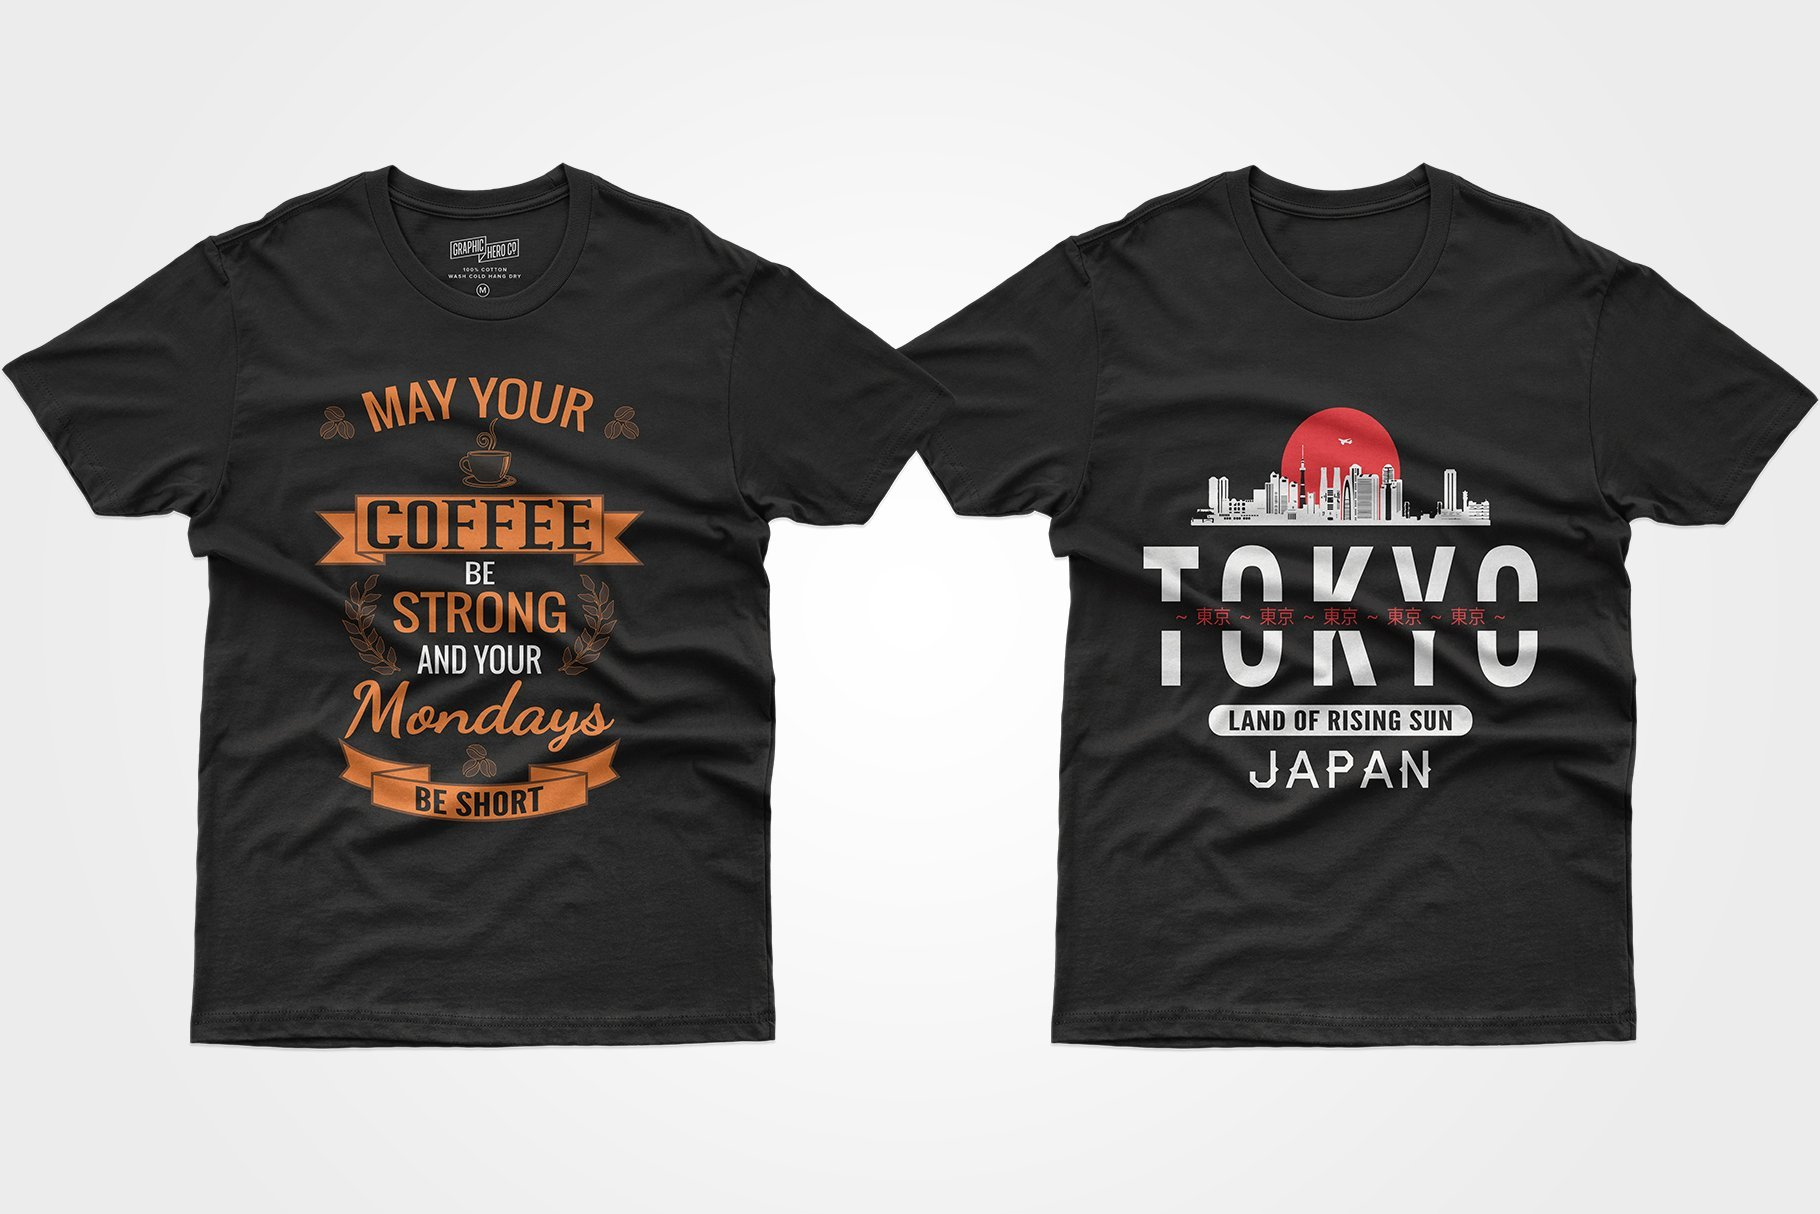 Two black T-shirts - one about the love of coffee, the other with the Tokyo wordmark.